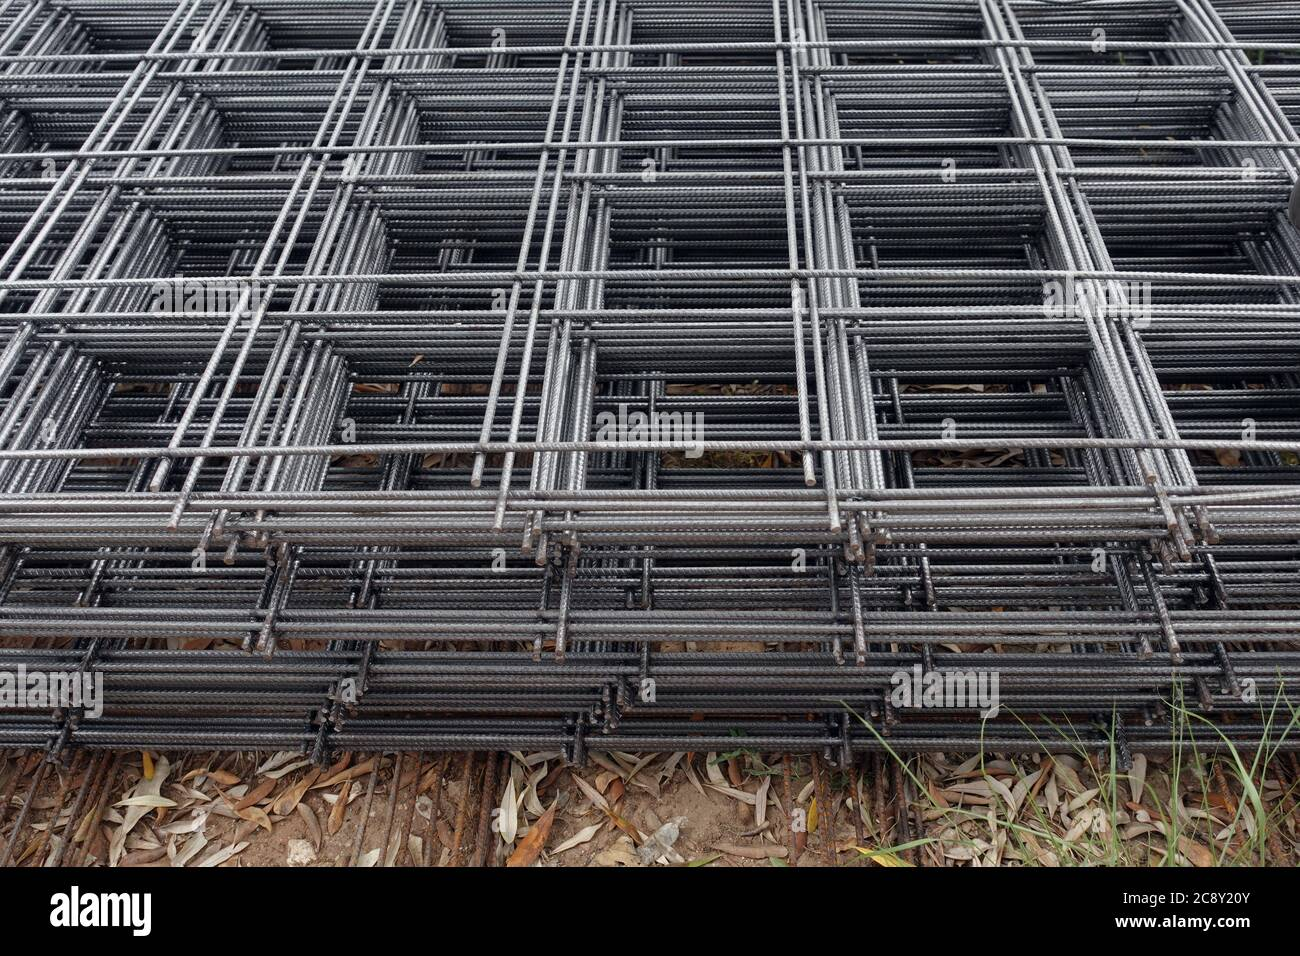 Steel wire concrete reinforcement mesh used in construction. Industrial background. Stock Photo